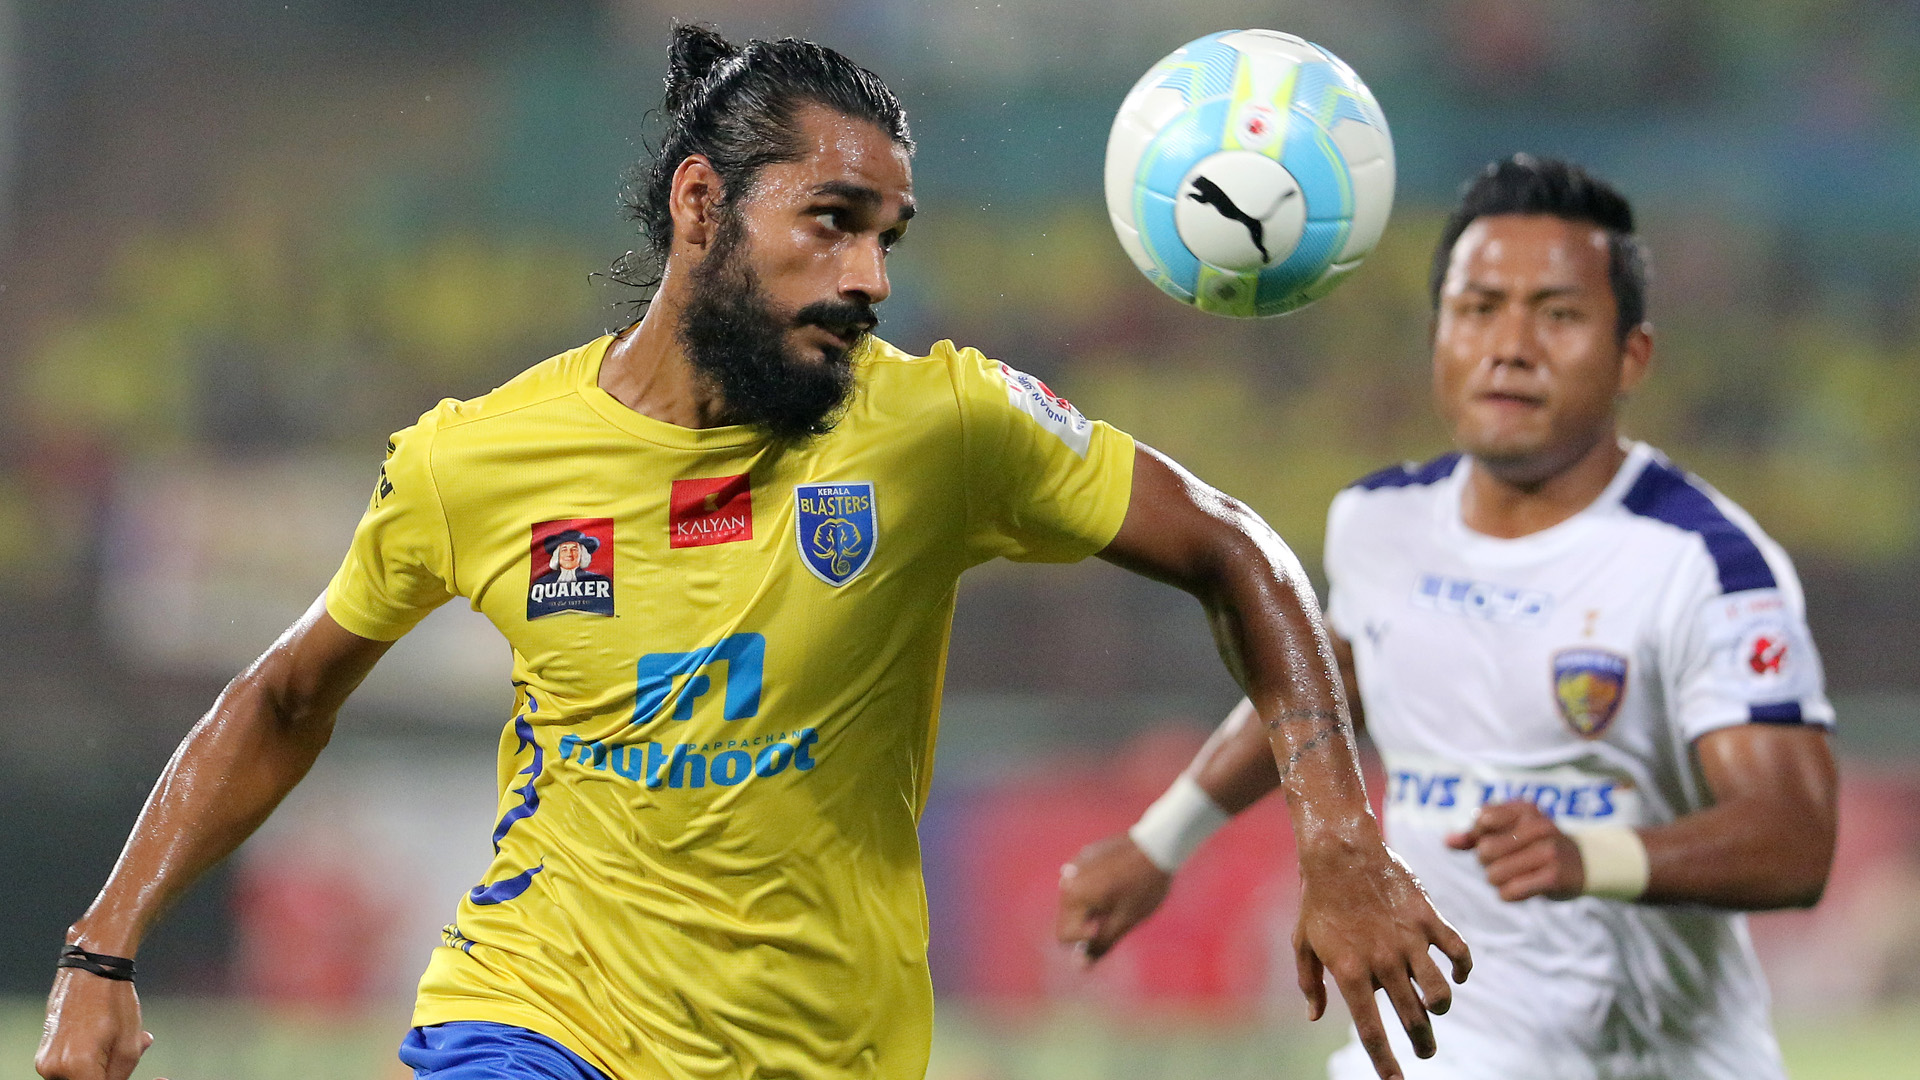 ISL 2017: Onus on Indian talent to step up